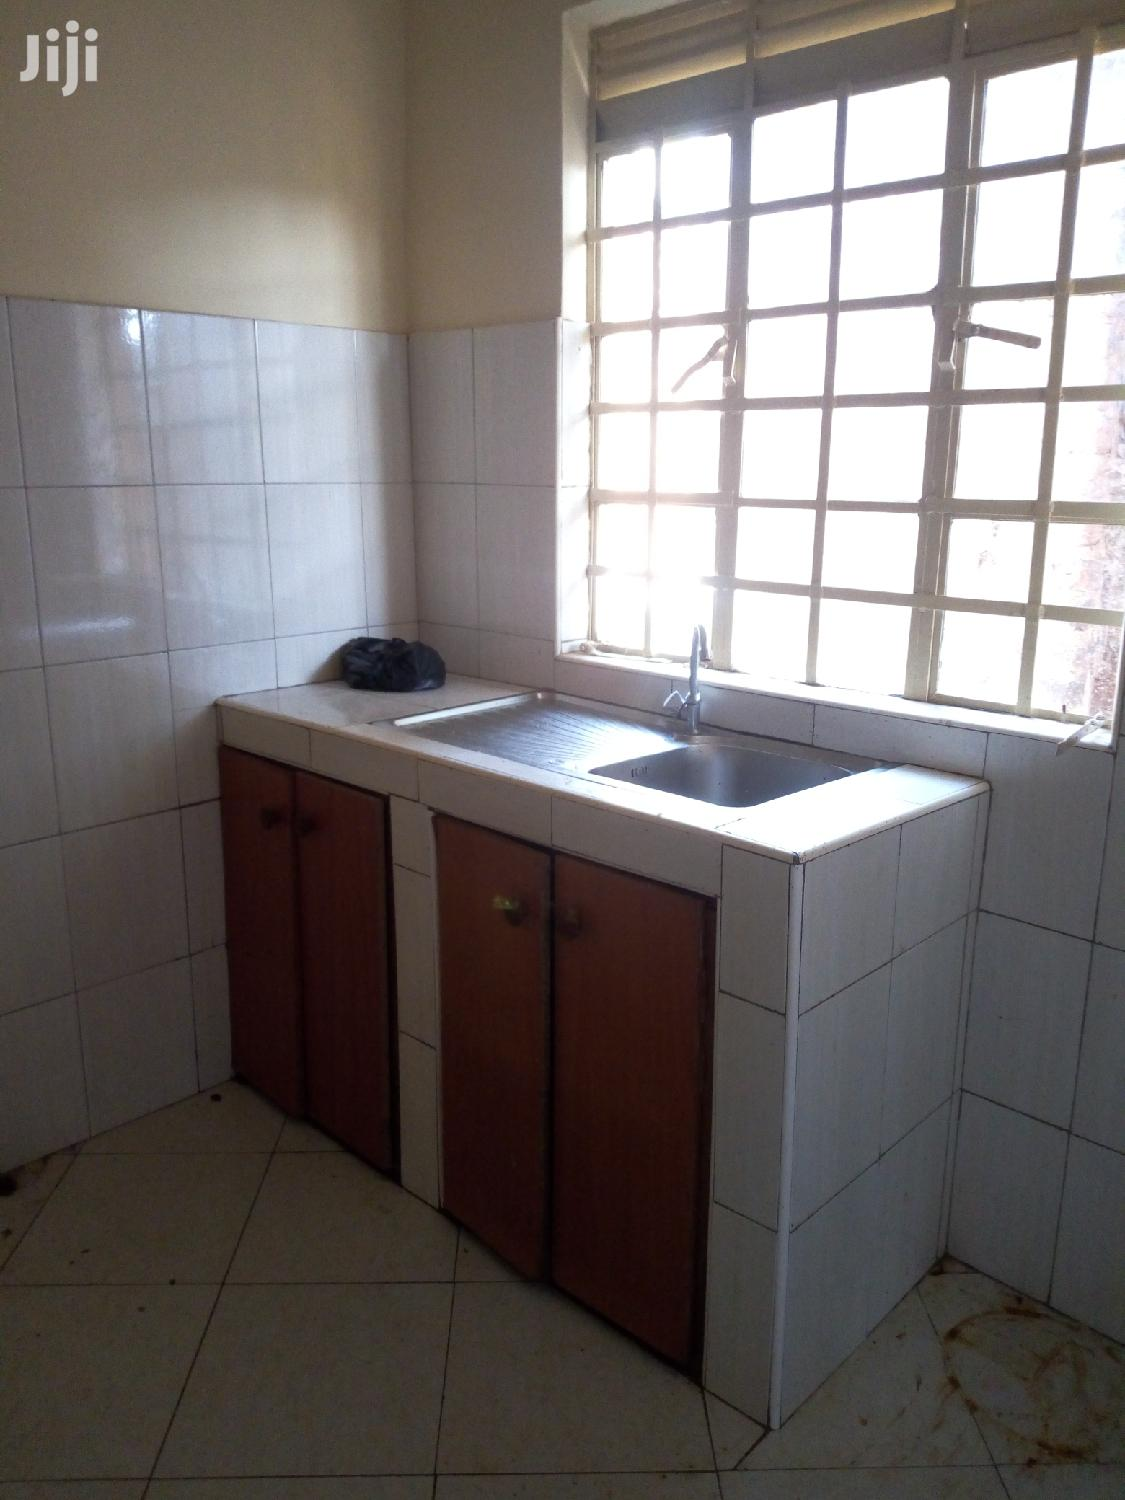 Two Bedroom House for Rent in Namugongo | Houses & Apartments For Rent for sale in Kampala, Central Region, Uganda